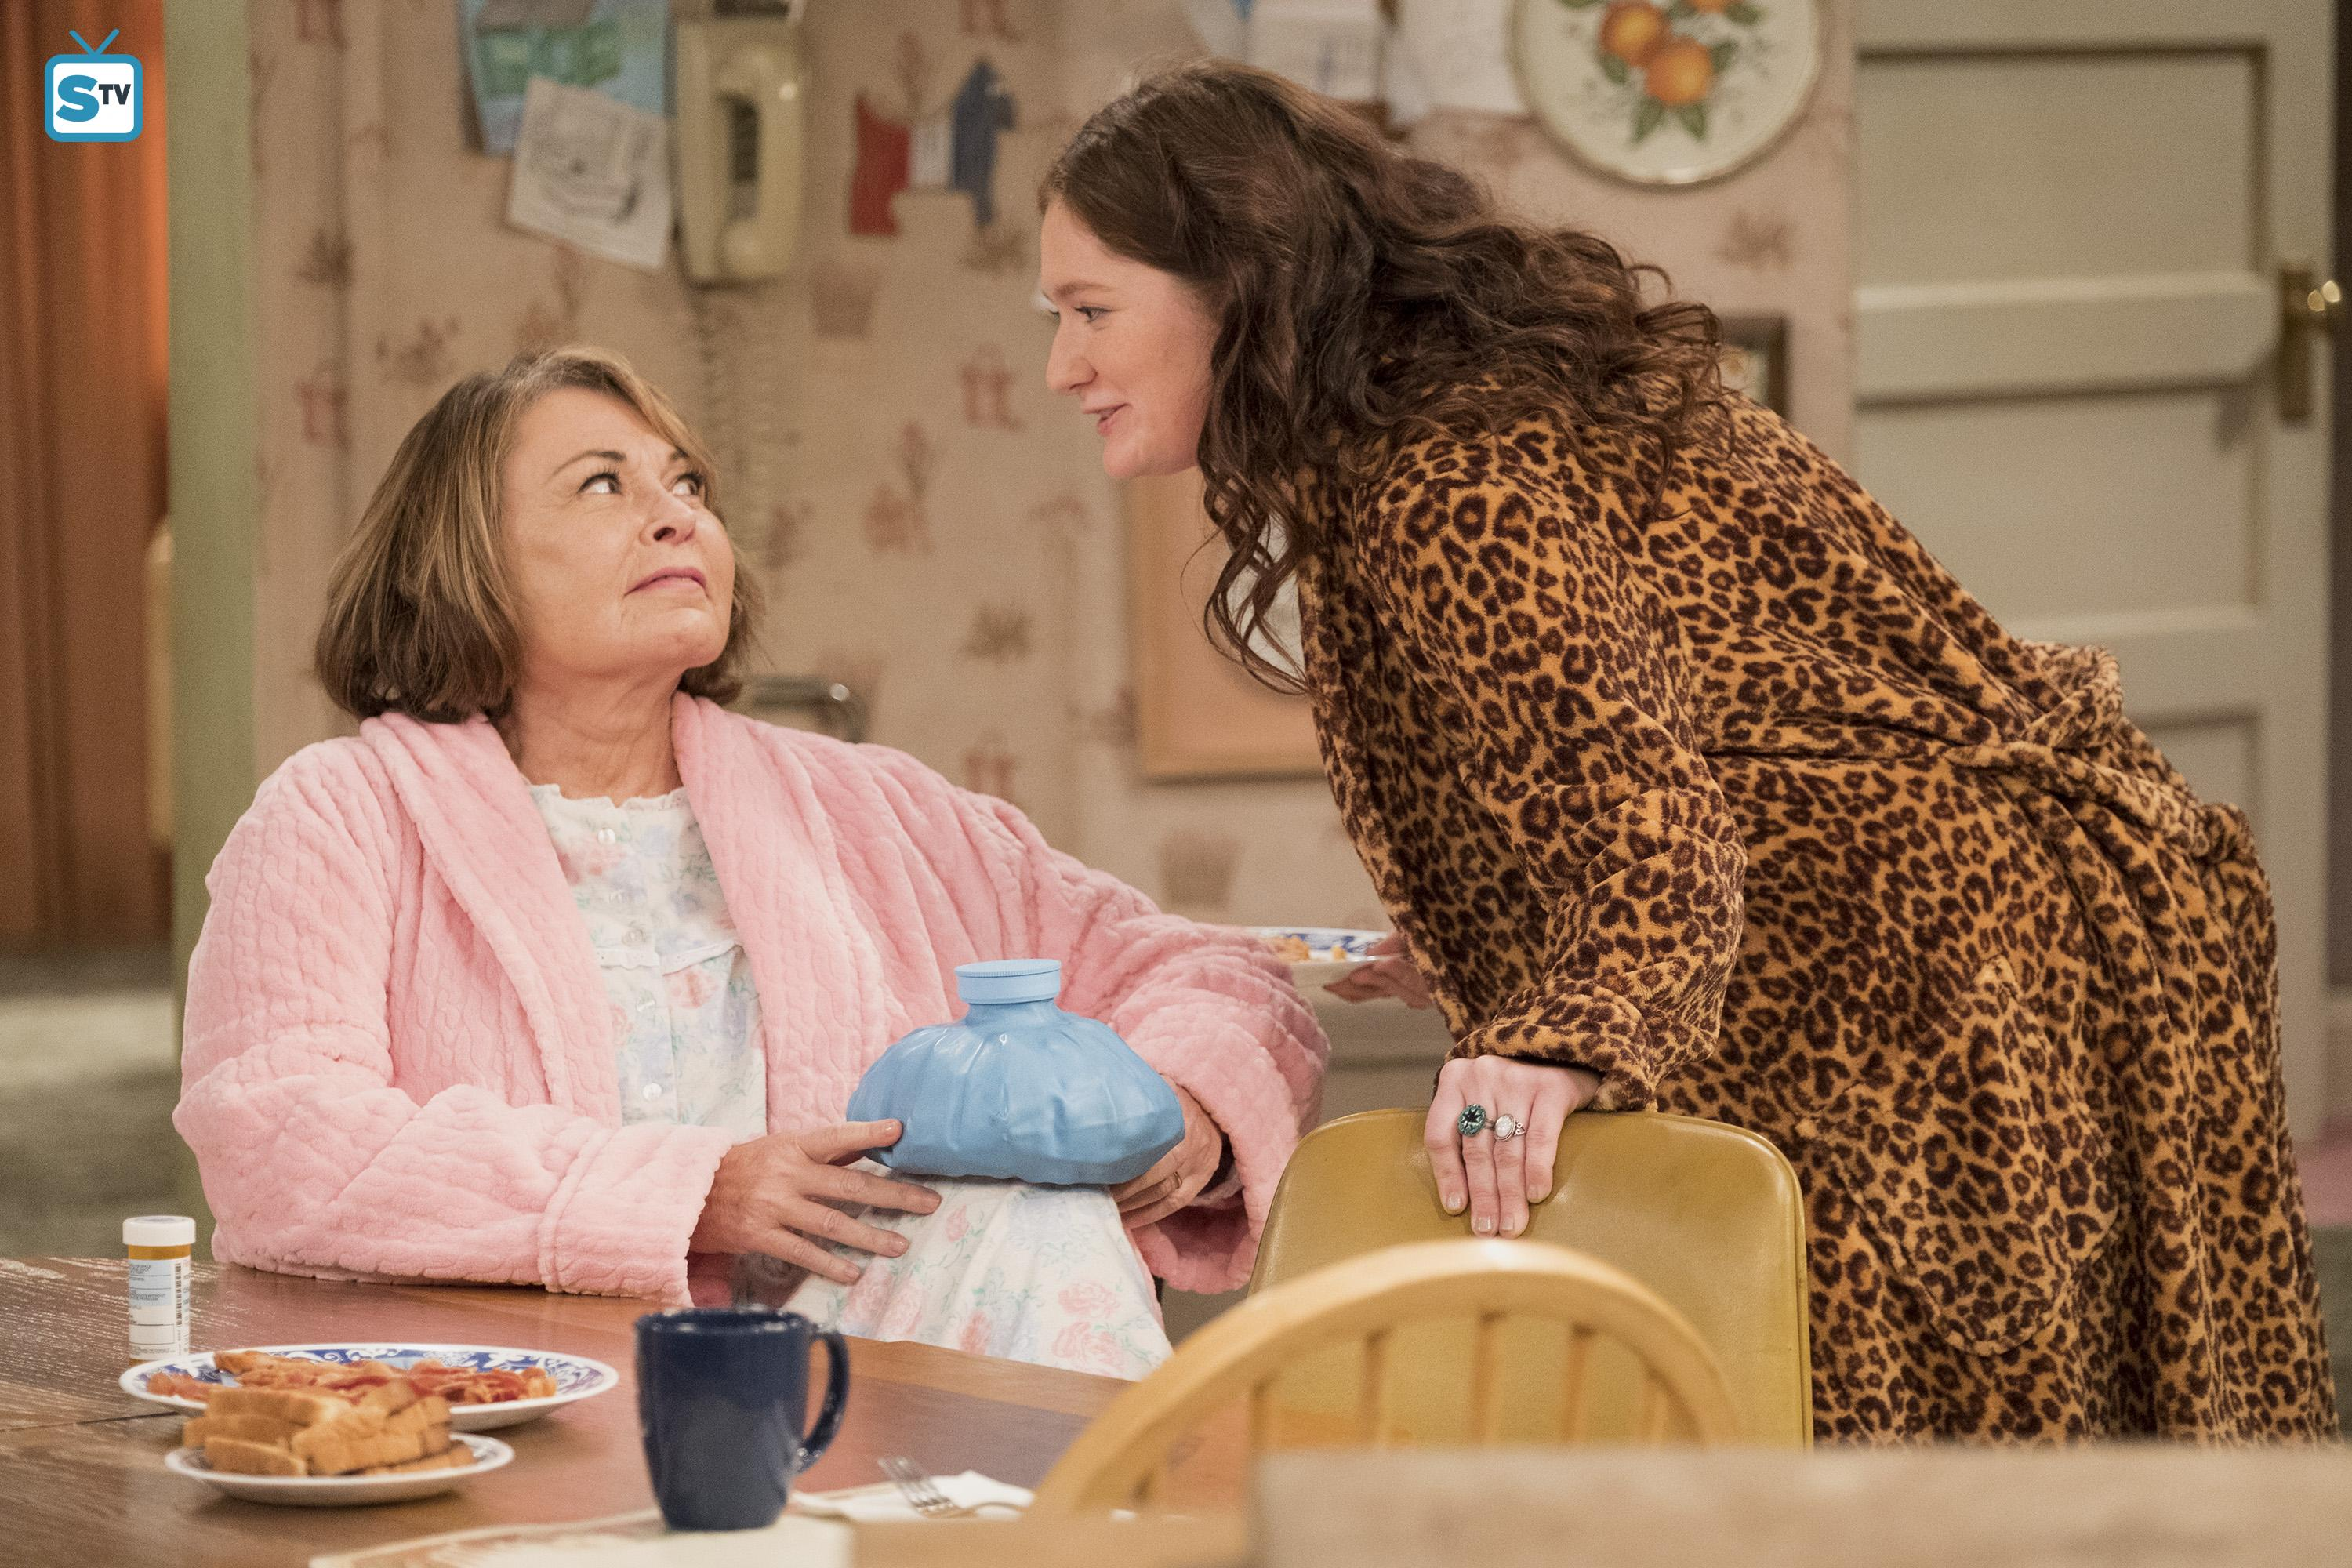 10x08 - Netflix and Pill - Roseanne and Harris